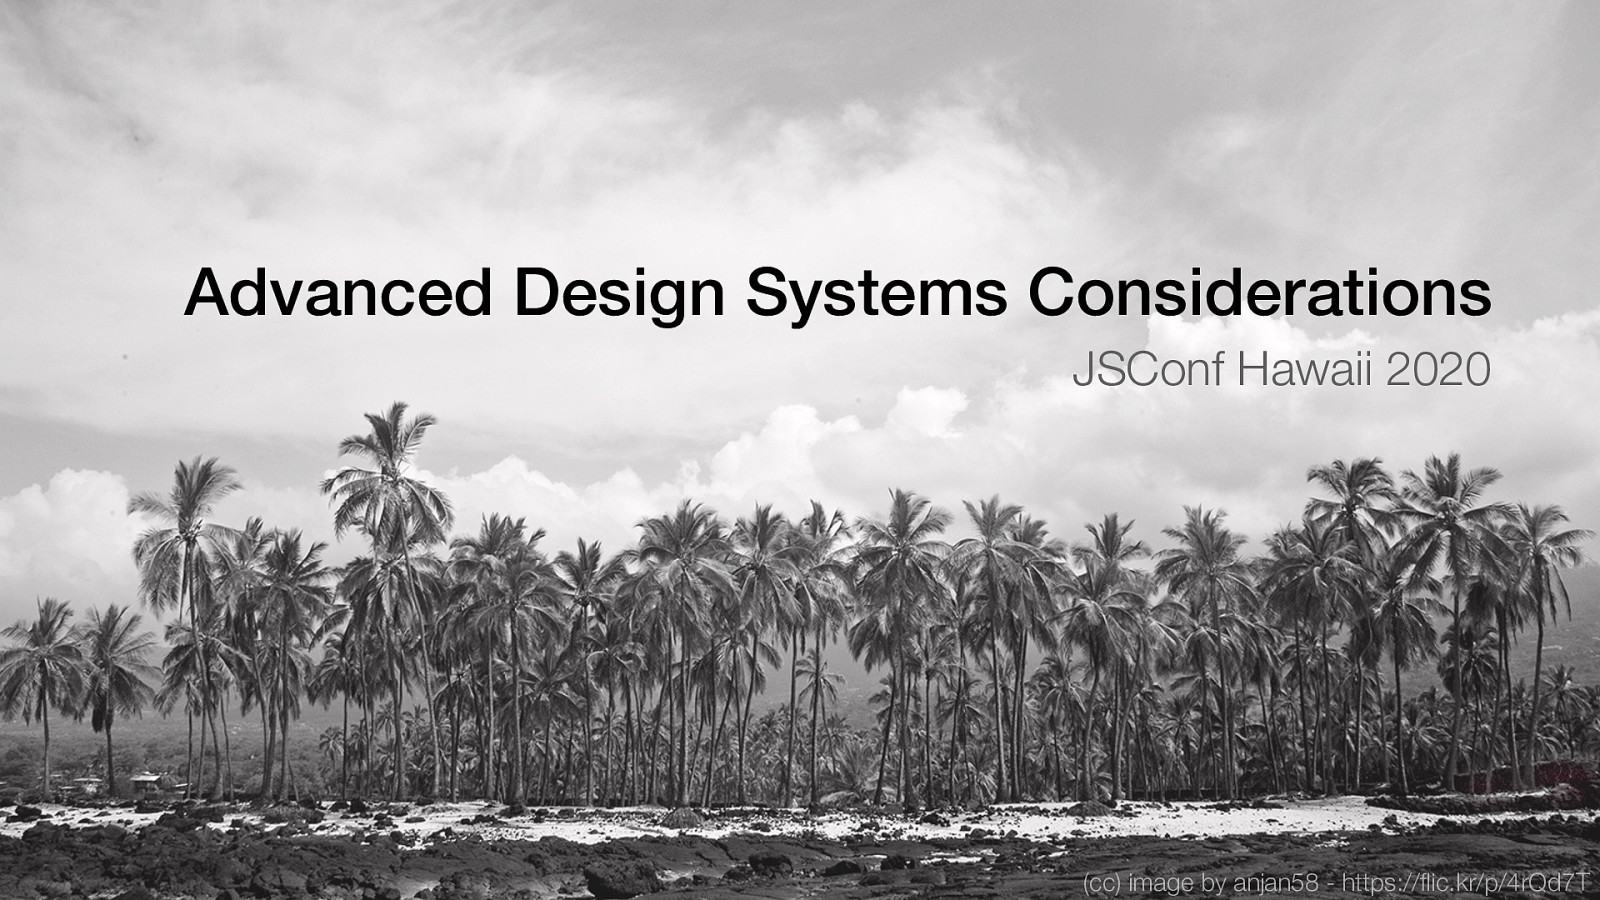 Advanced Design Systems Considerations